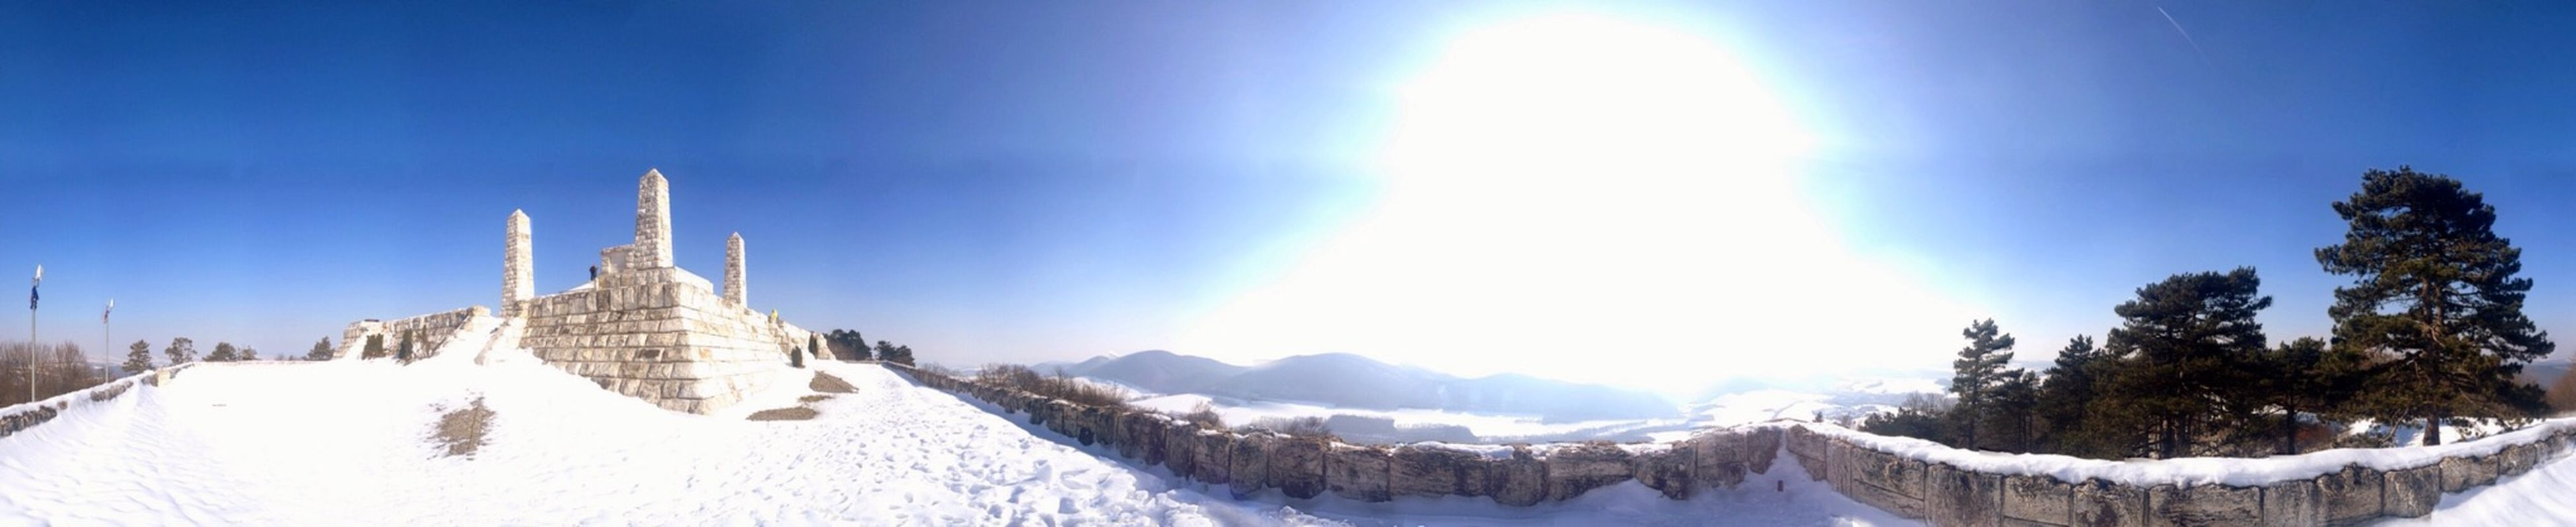 blue, built structure, architecture, religion, sunlight, building exterior, water, sky, tranquility, place of worship, spirituality, tranquil scene, snow, sun, scenics, clear sky, nature, mountain, cold temperature, lake